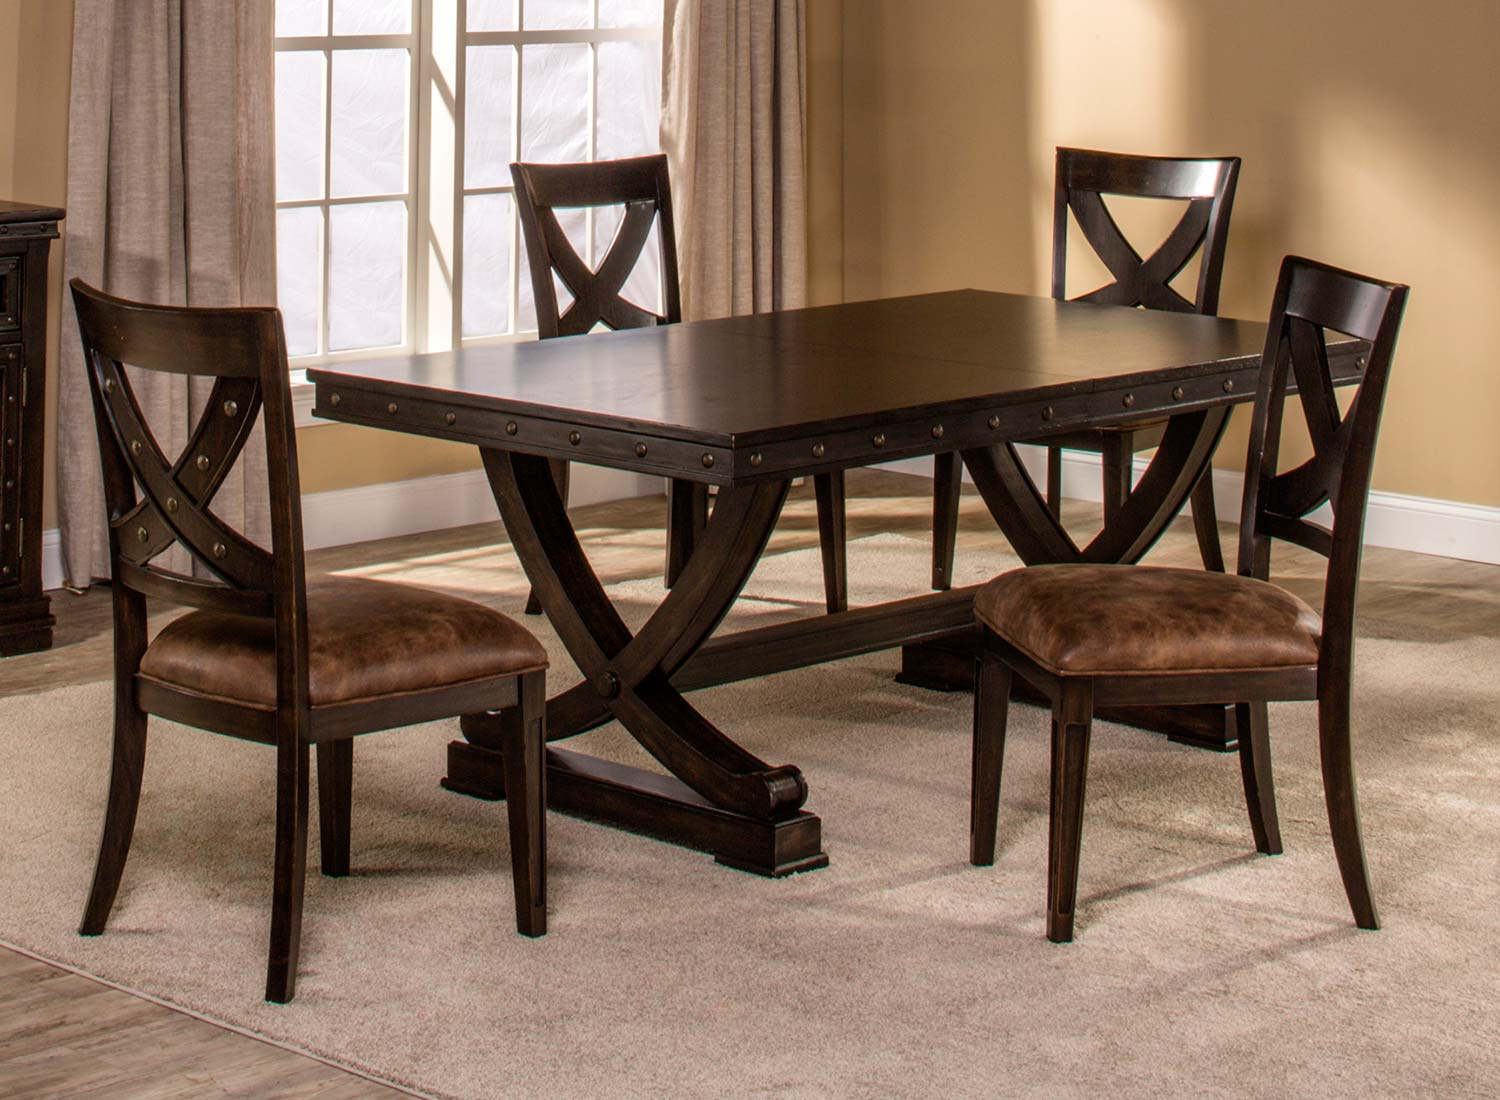 Beautiful Hillsdale Santa Fe 5 Piece Trestle Dining Set   Distressed Espresso